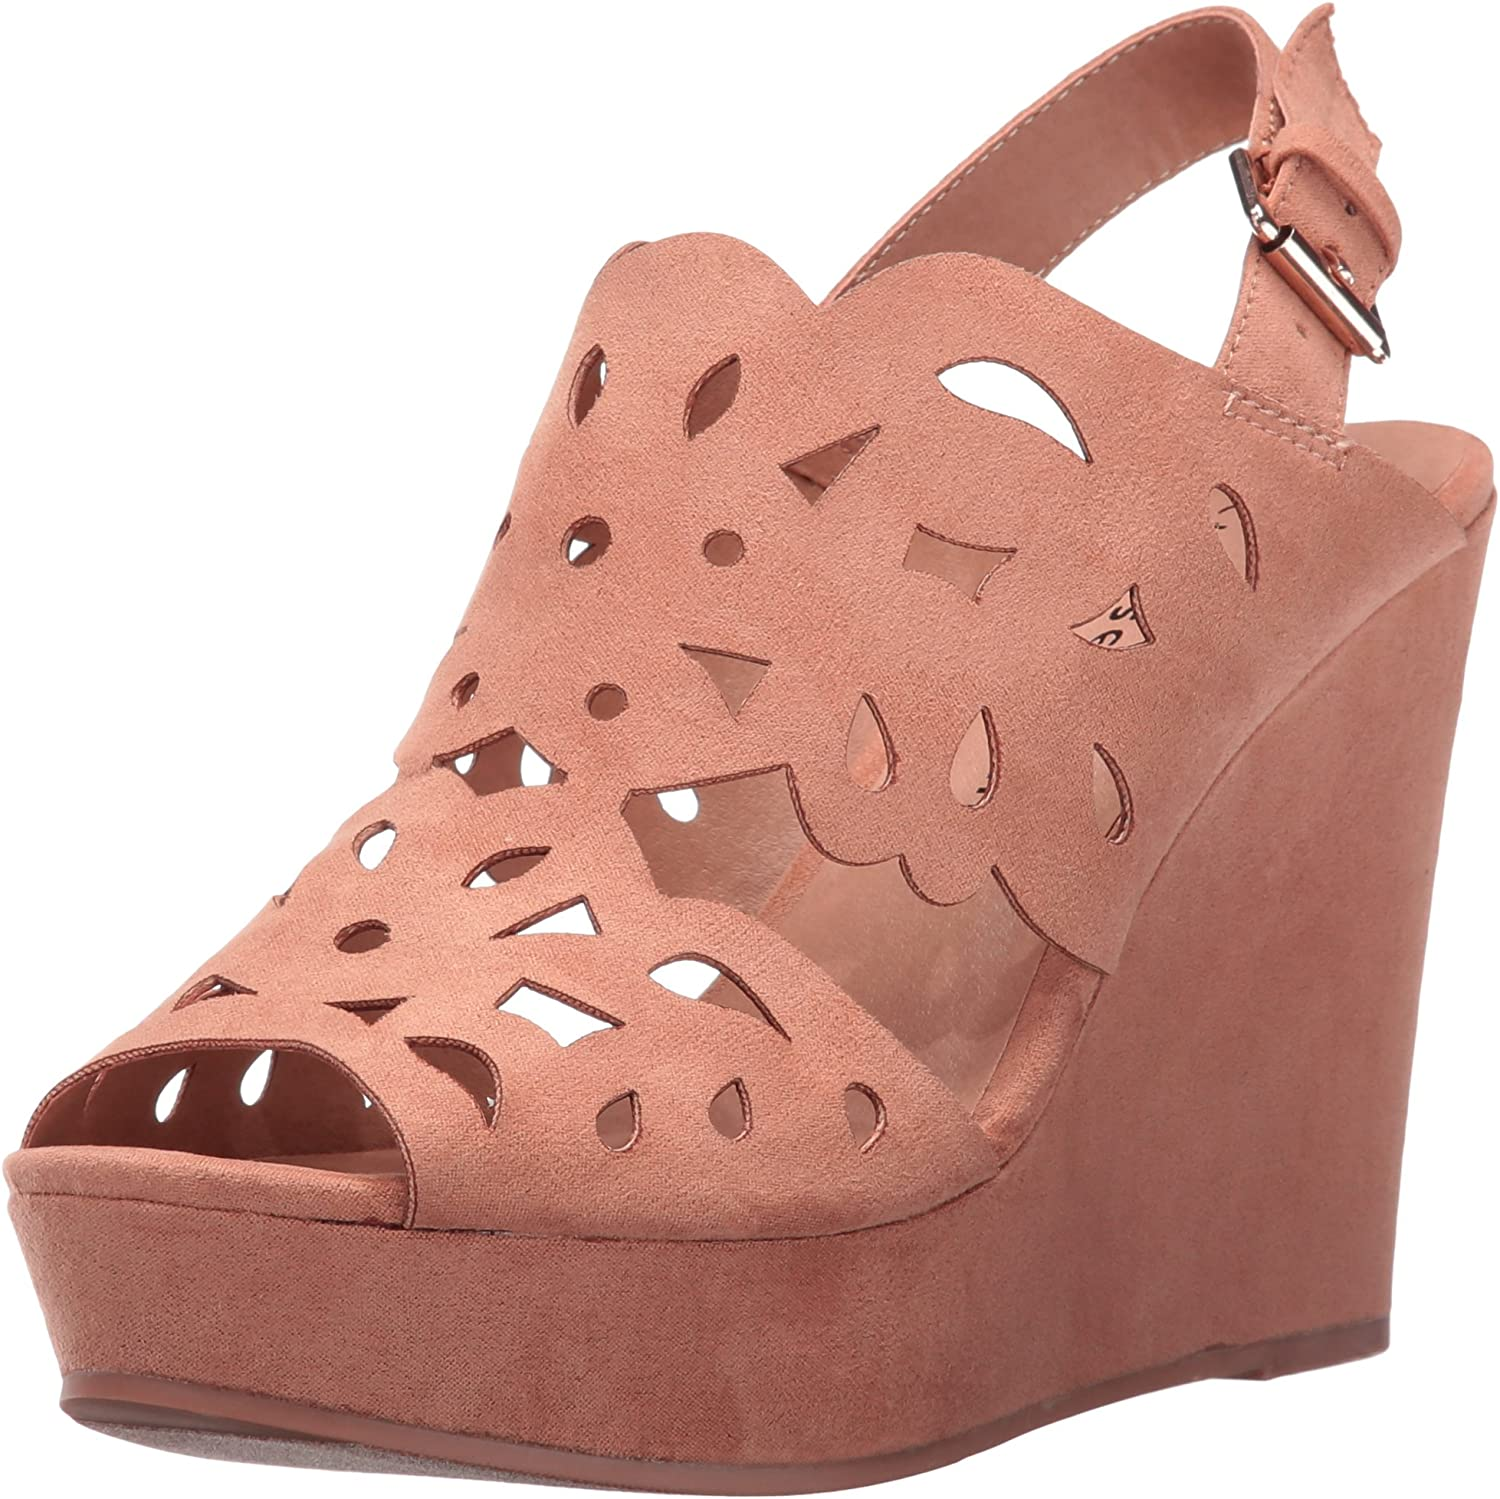 Chinese Laundry Women's In Max 81% Animer and price revision OFF Love Wedge Sandal